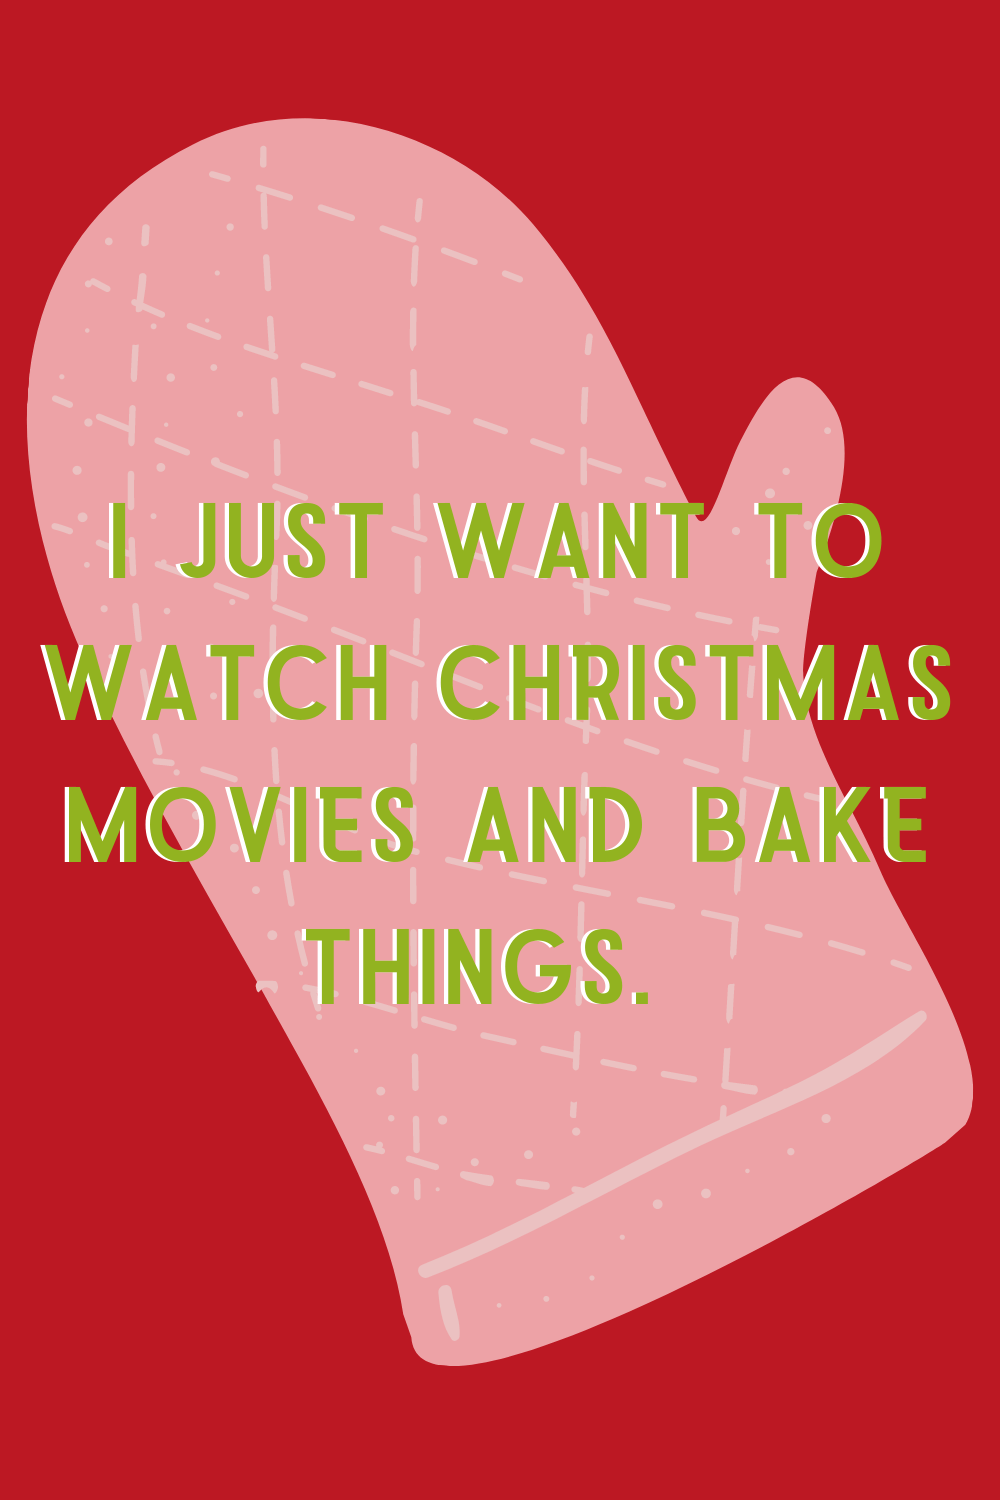 Christmas Baking Quotes : christmas, baking, quotes, Christmas, Letterboard, Quotes, Countdown, Darling, Quote